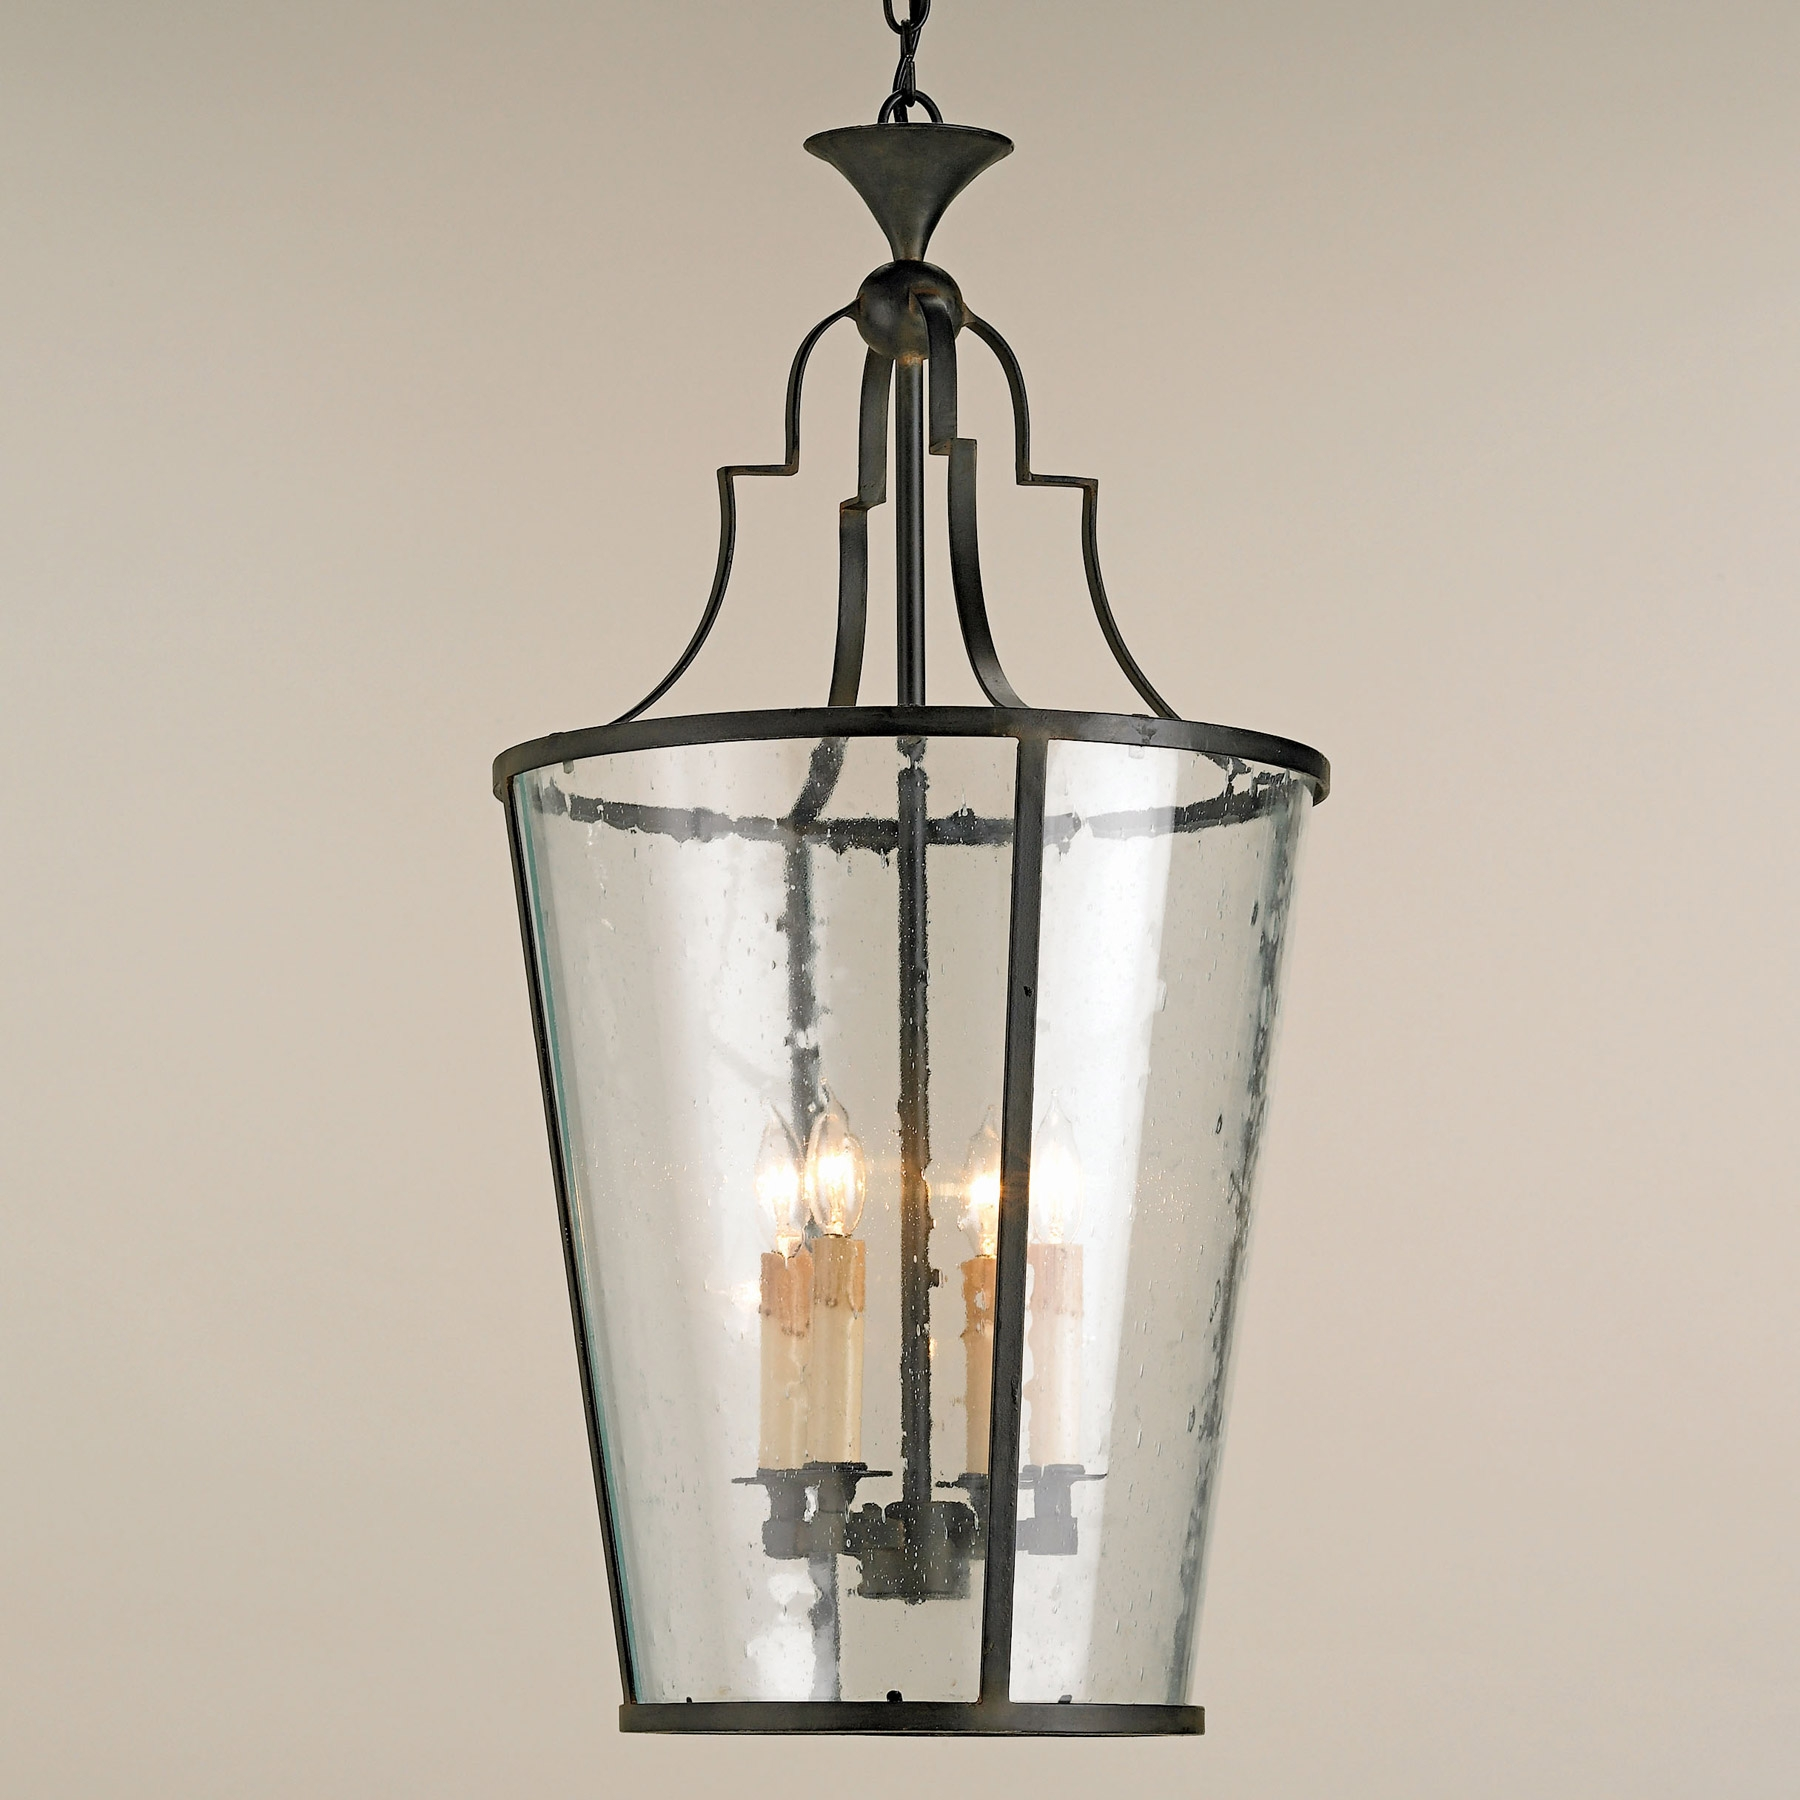 Foyer Lantern Chandelier Stunning Indoor Lanterns Home Ideas Regarding Indoor Lantern Chandelier (Image 6 of 15)